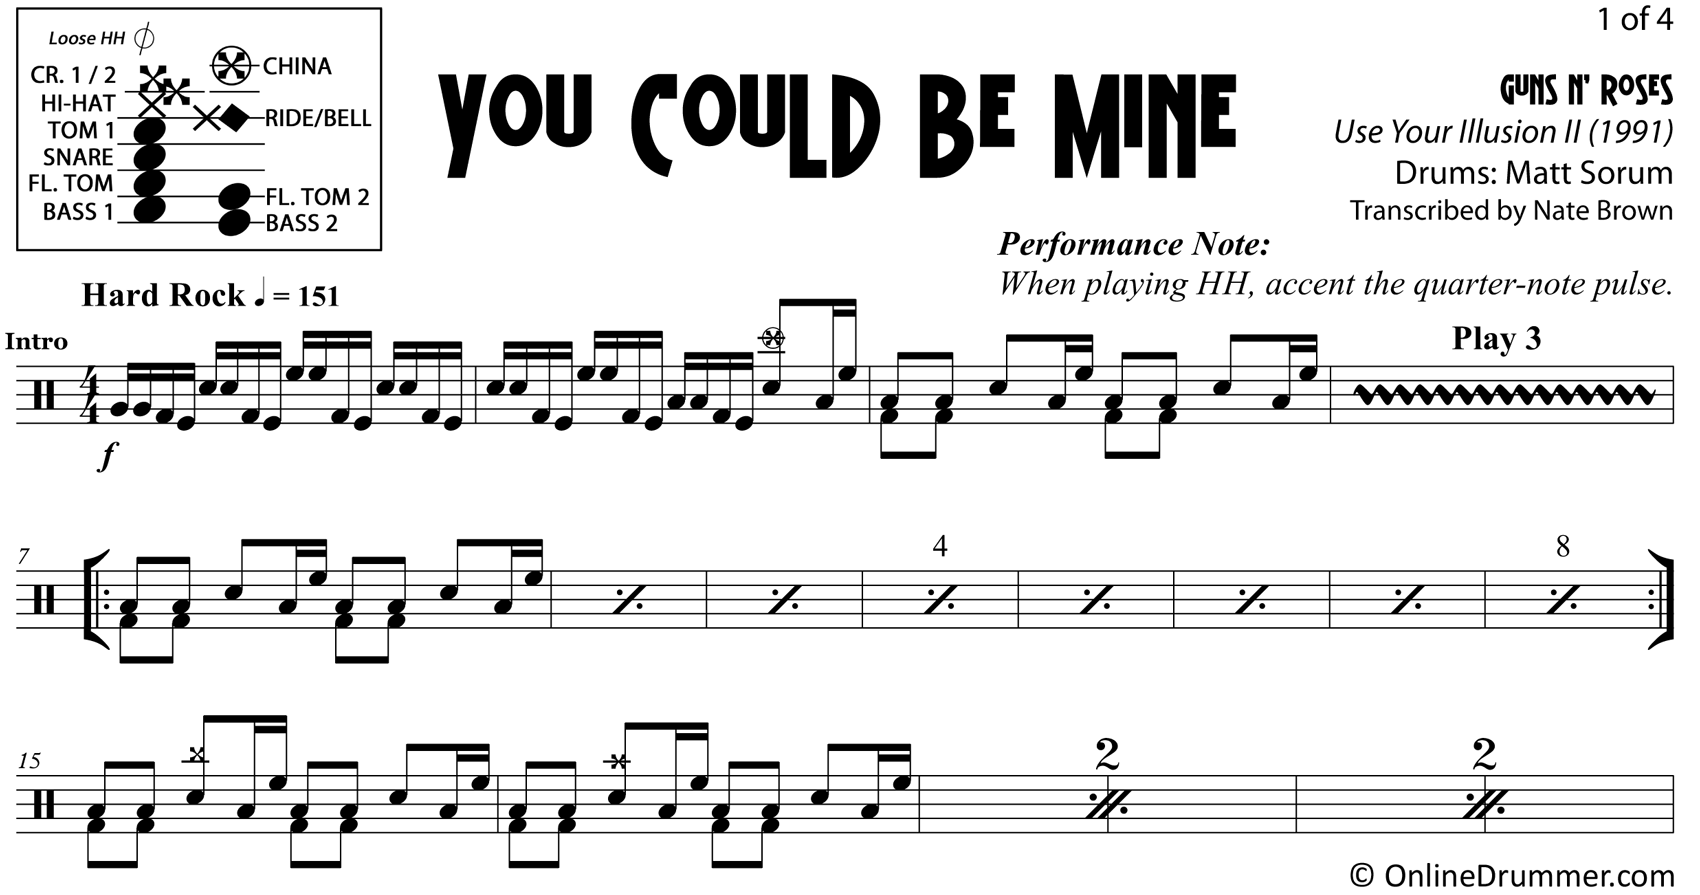 You Could Be Mine - Guns N Roses - Drum Sheet Music